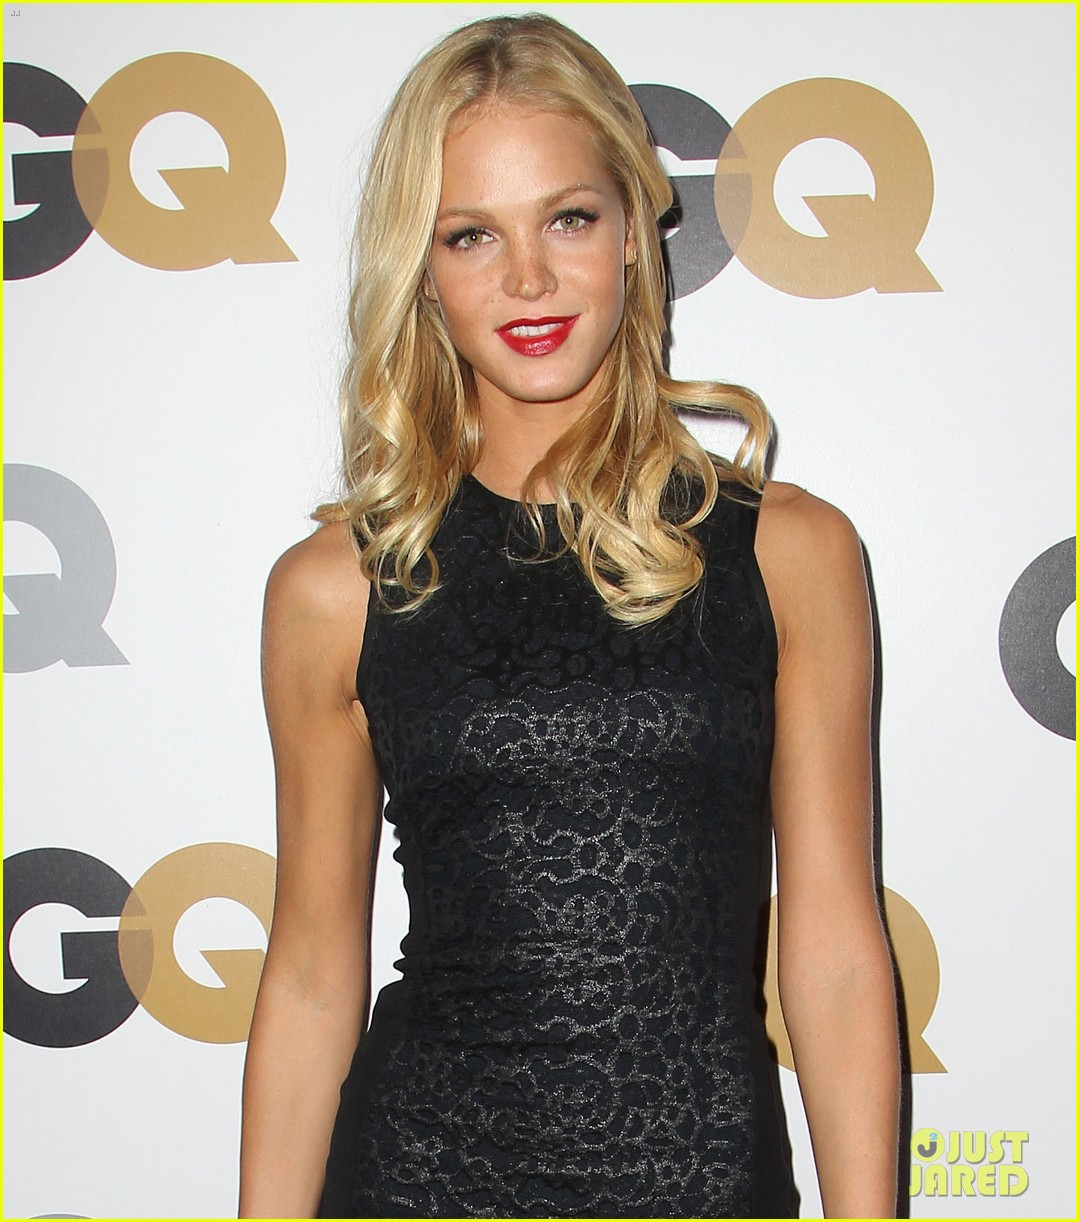 Erin Heatherton Wallpapers